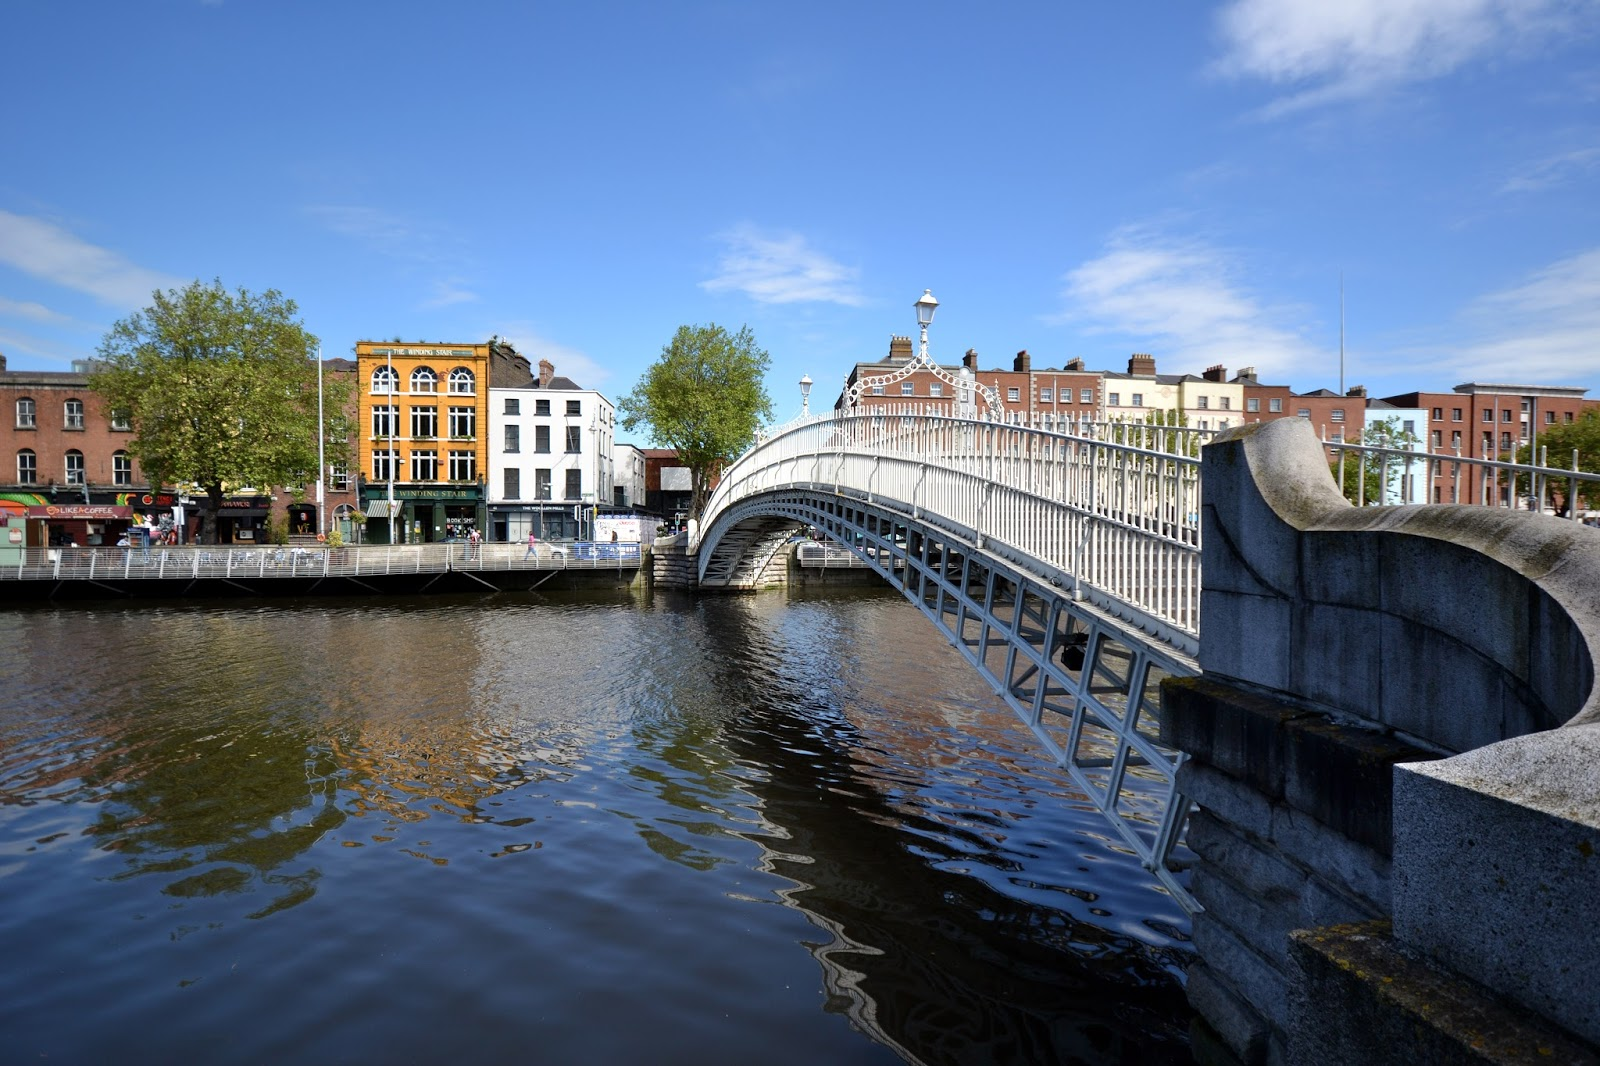 http://www.theroamingrenegades.com/2014/06/guide-and-report-to-historic-dublin.html